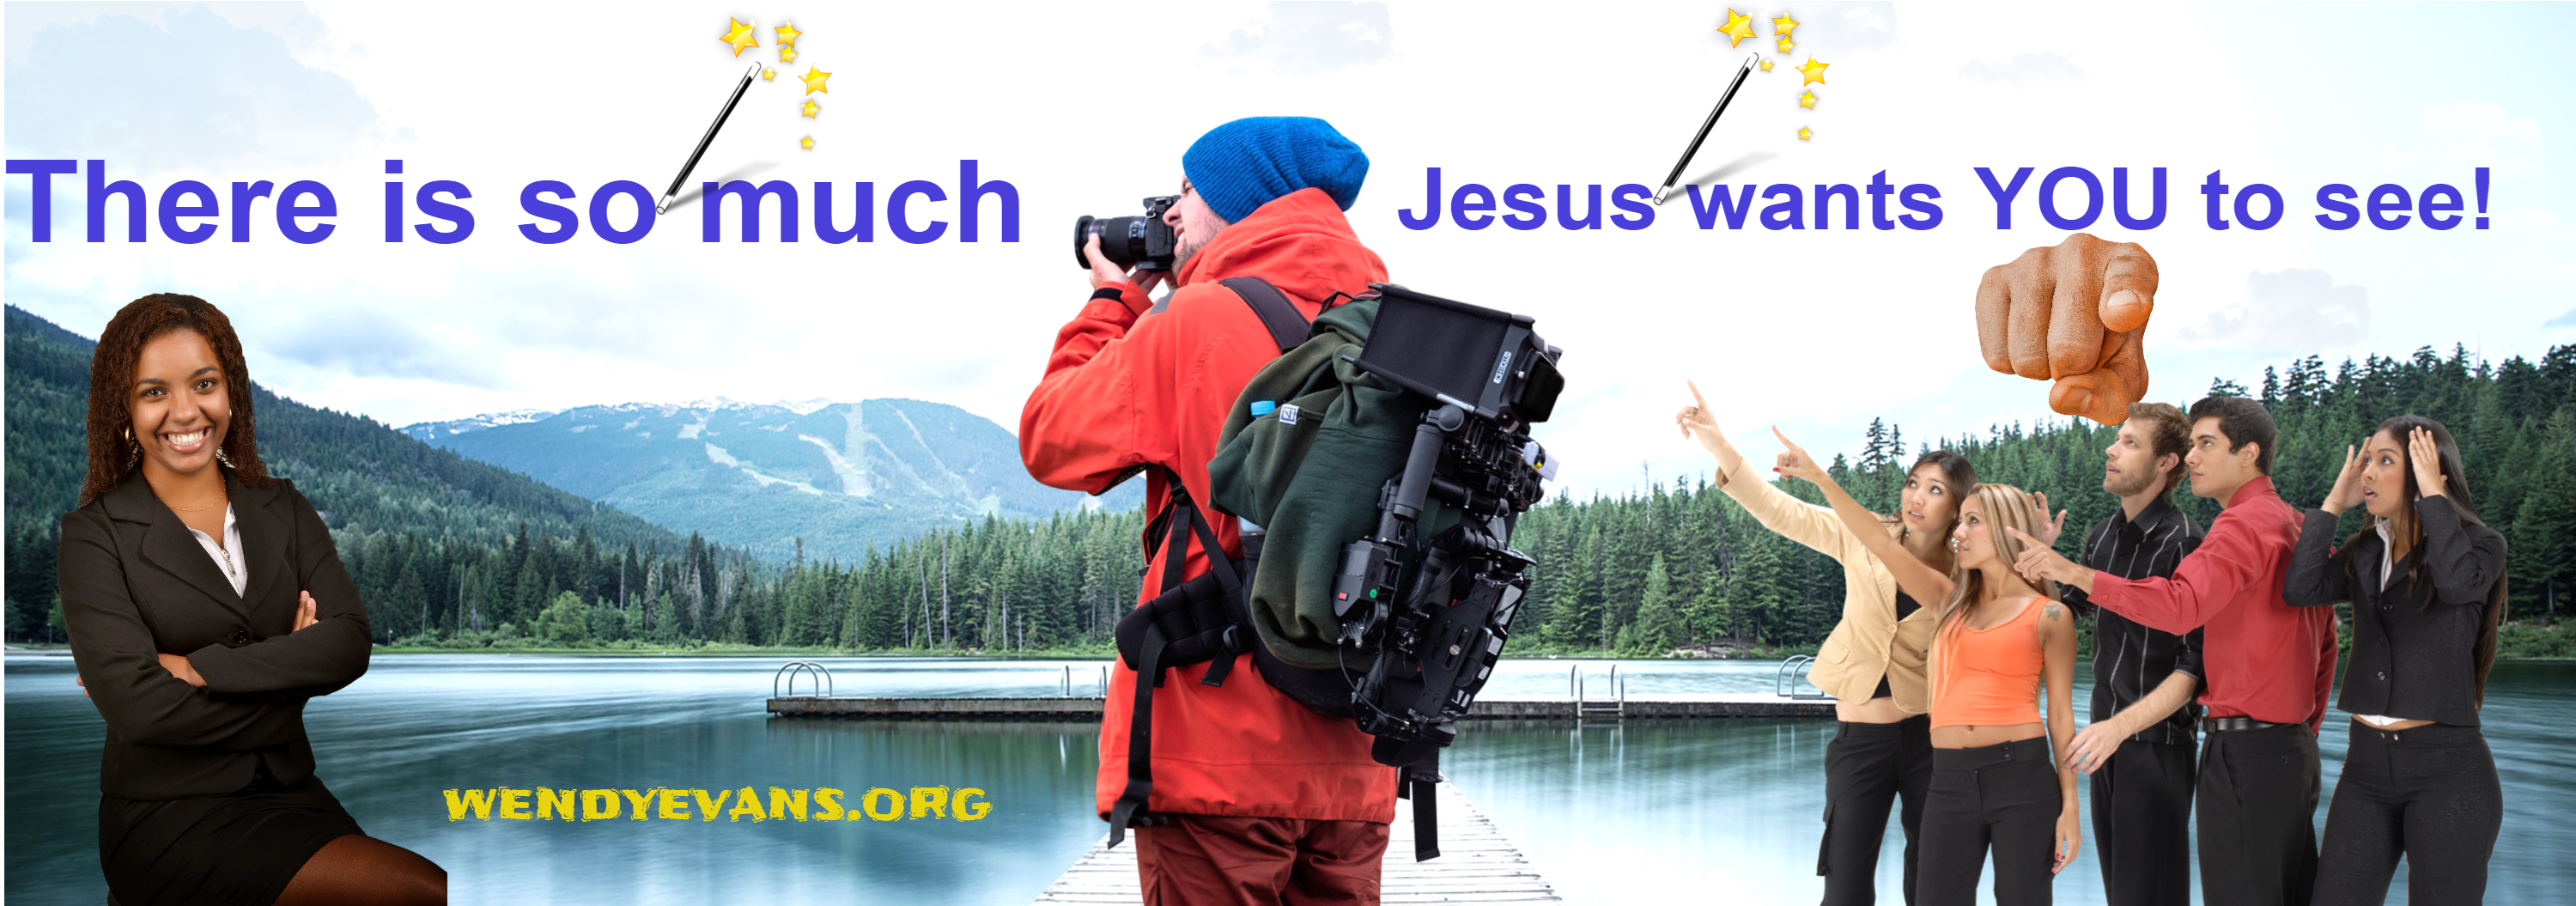 Jesus Has An Offer For YOU!